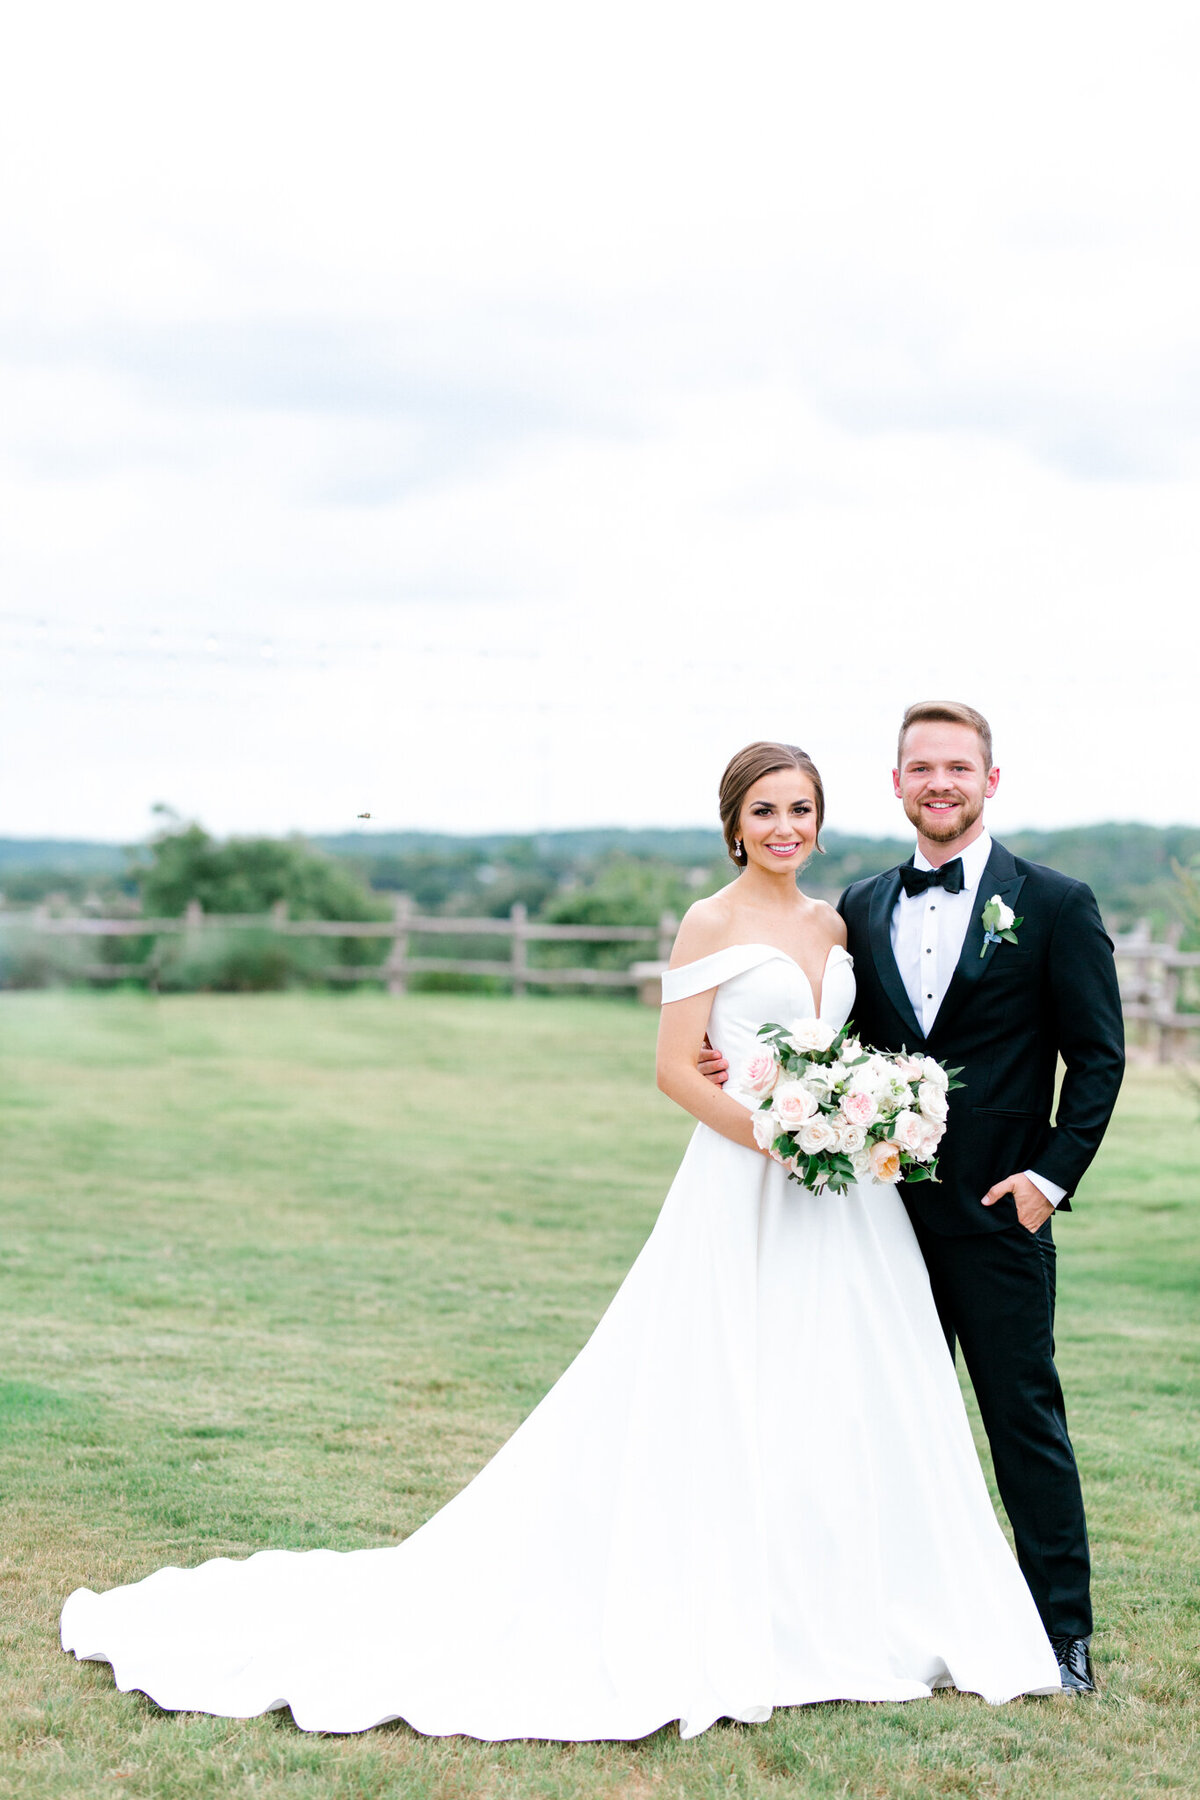 Lexi Broughton & Garrett Greer Wedding at Dove Ridge Vineyards | Sami Kathryn Photography | Dallas Wedding Photography-75